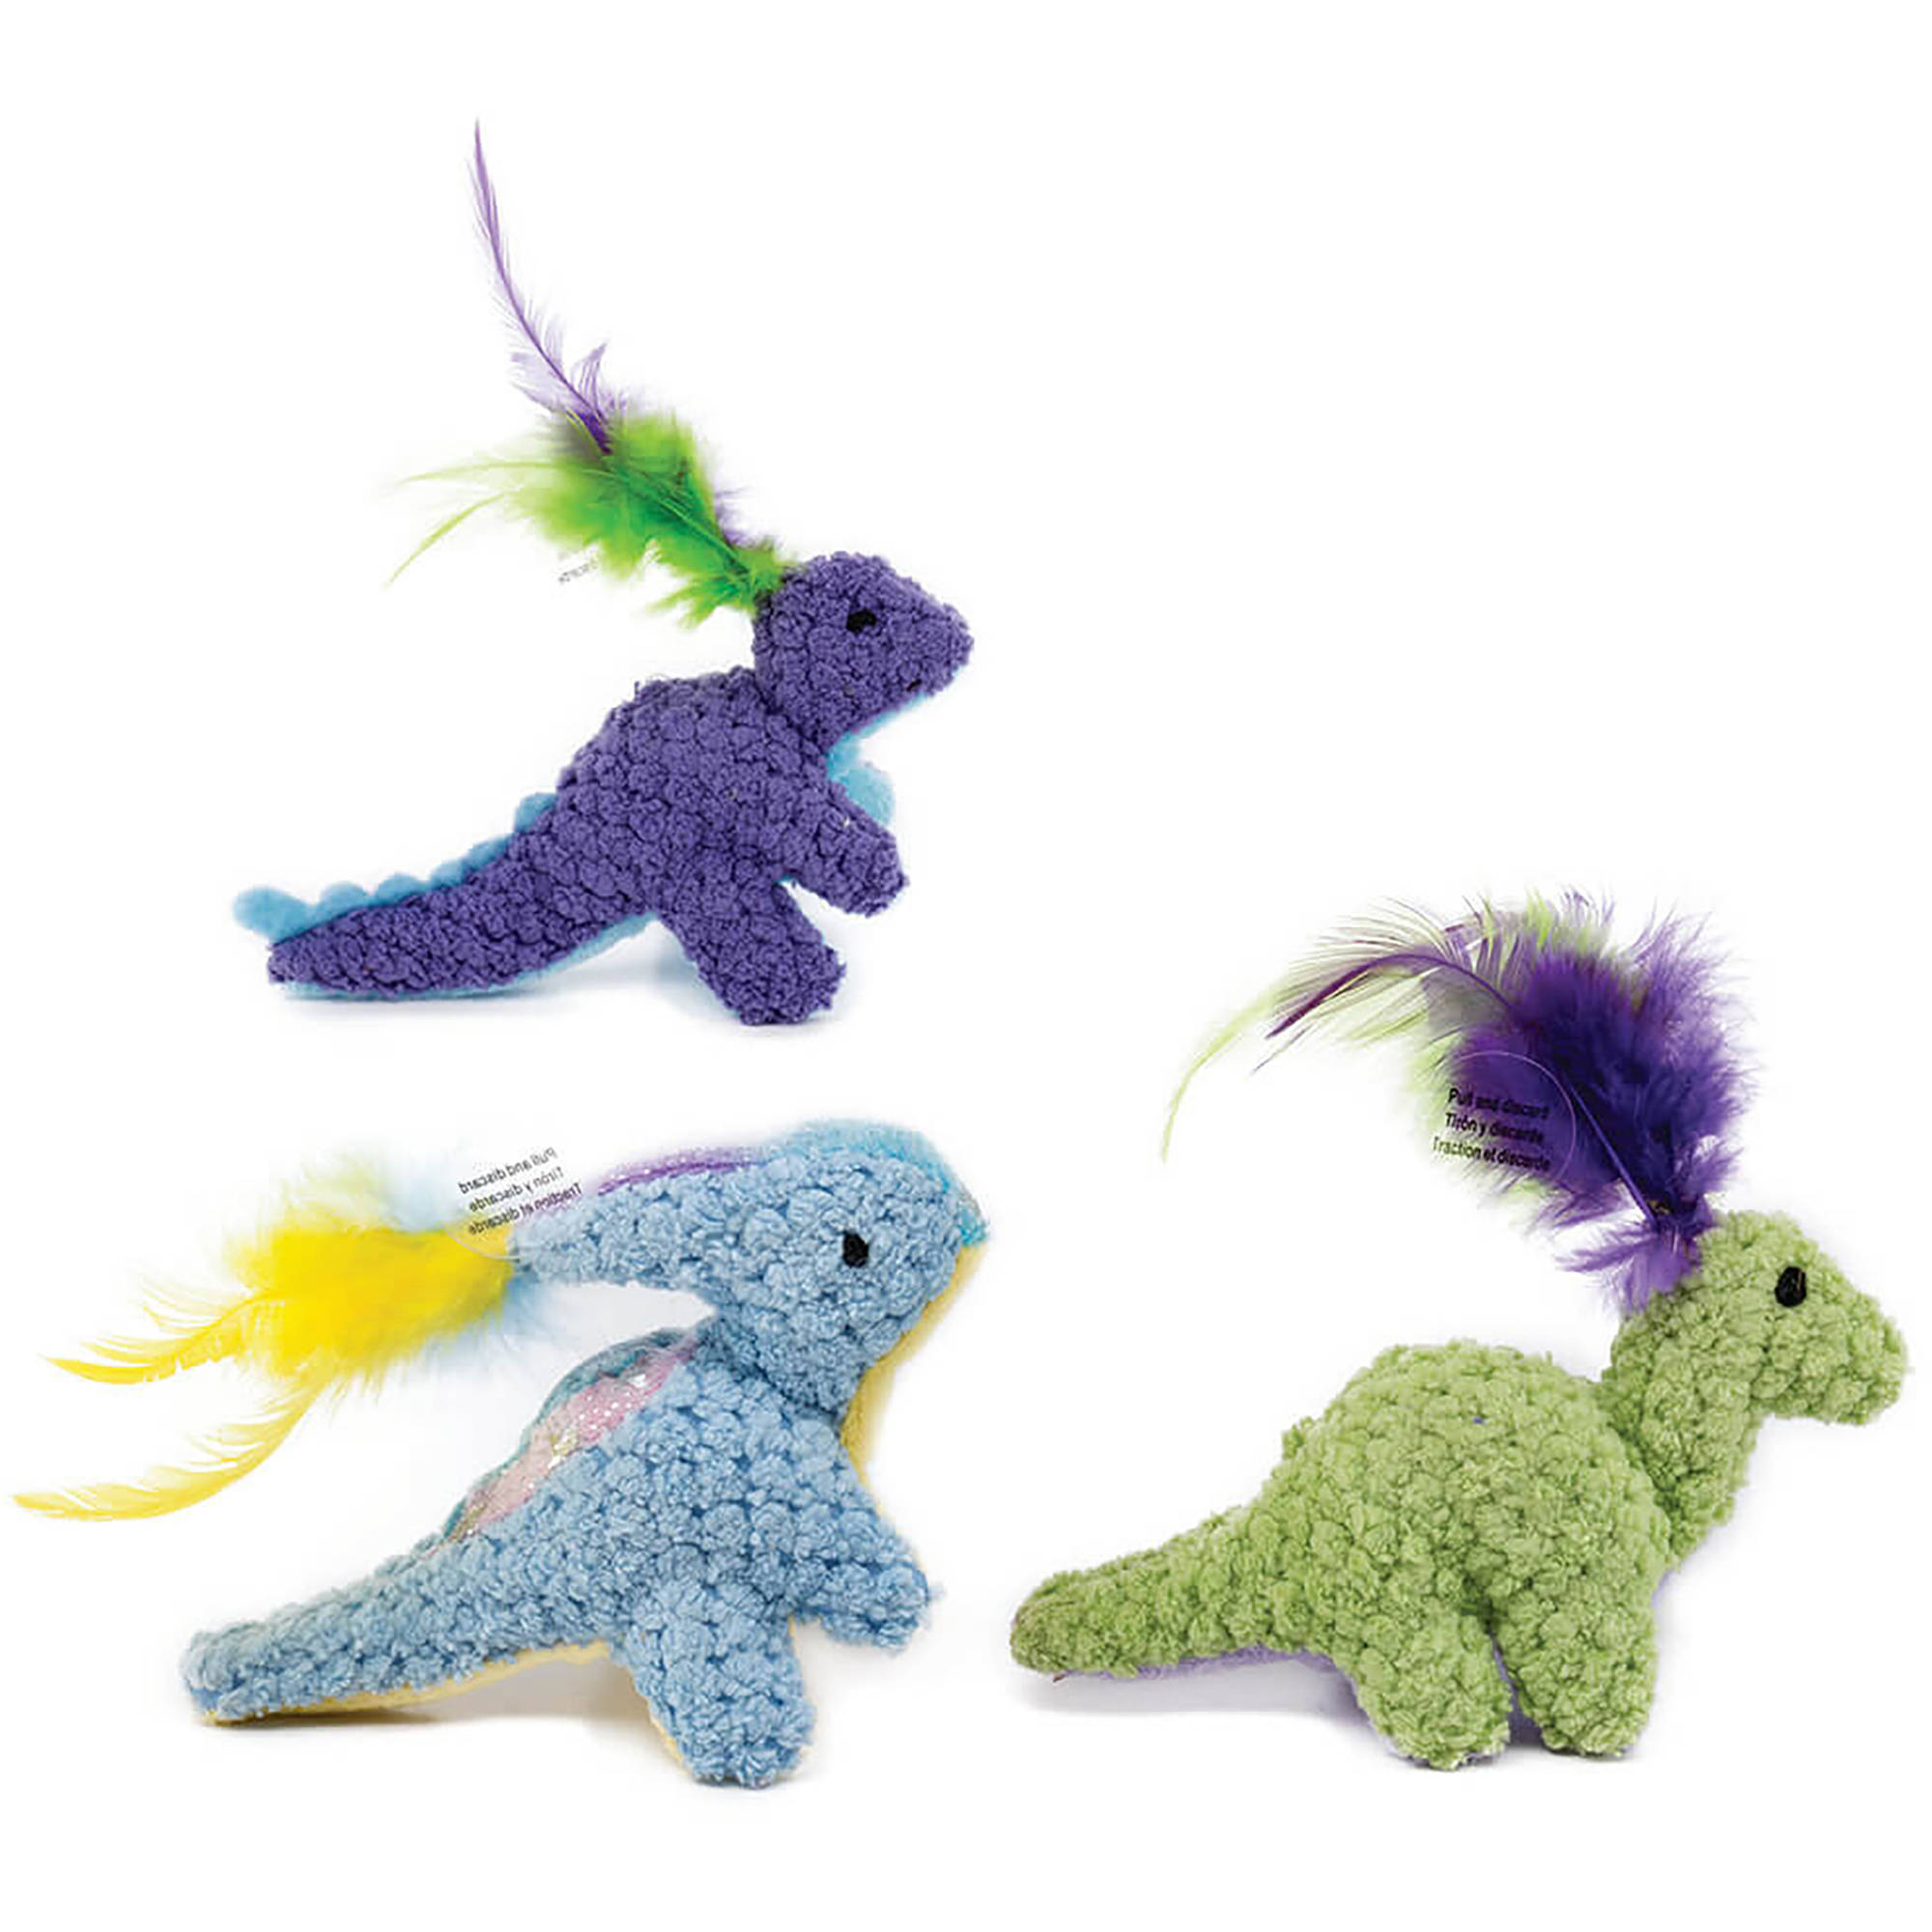 Pet Zone Dino-Friends 3-Pack Cat Toys by OurPet's Company